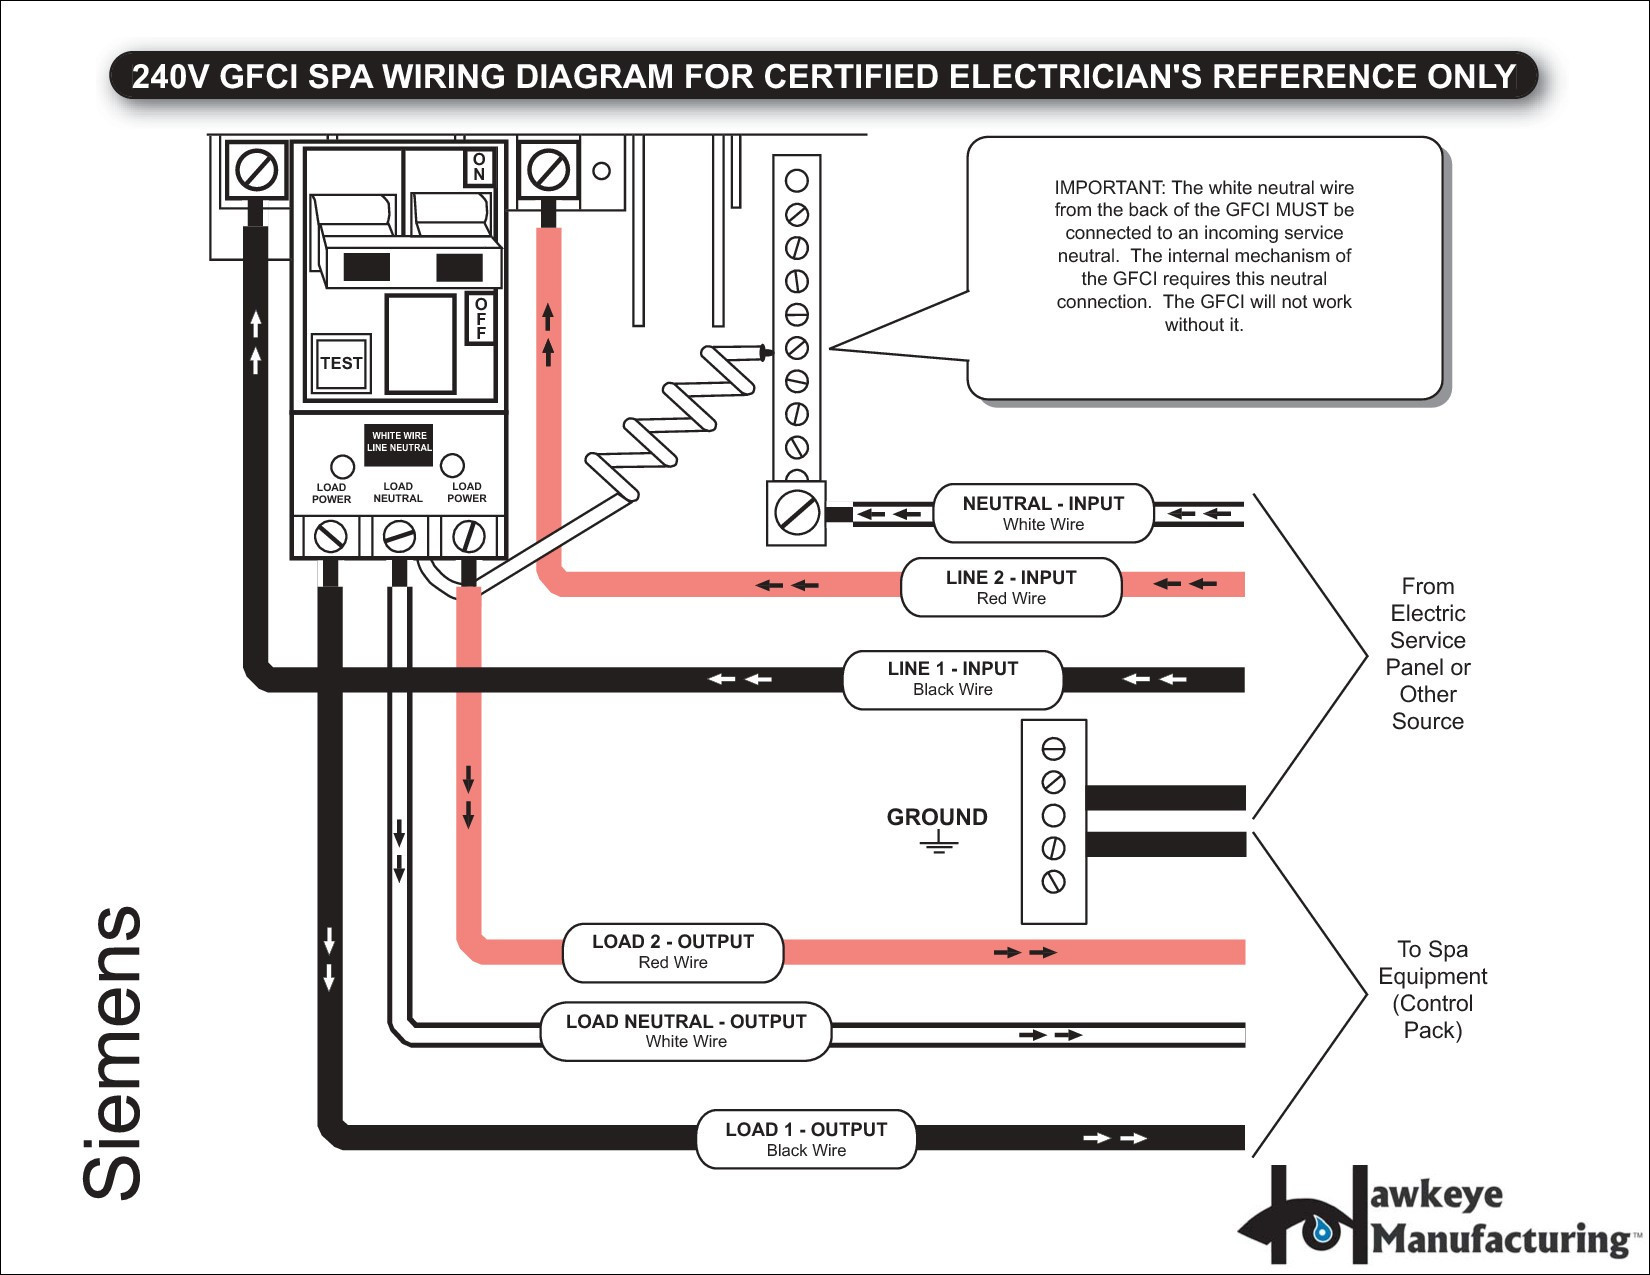 Wiring Diagram Gfci Breaker Example Of Wiring Diagram Gfci Outlet - Gfci Breaker Wiring Diagram